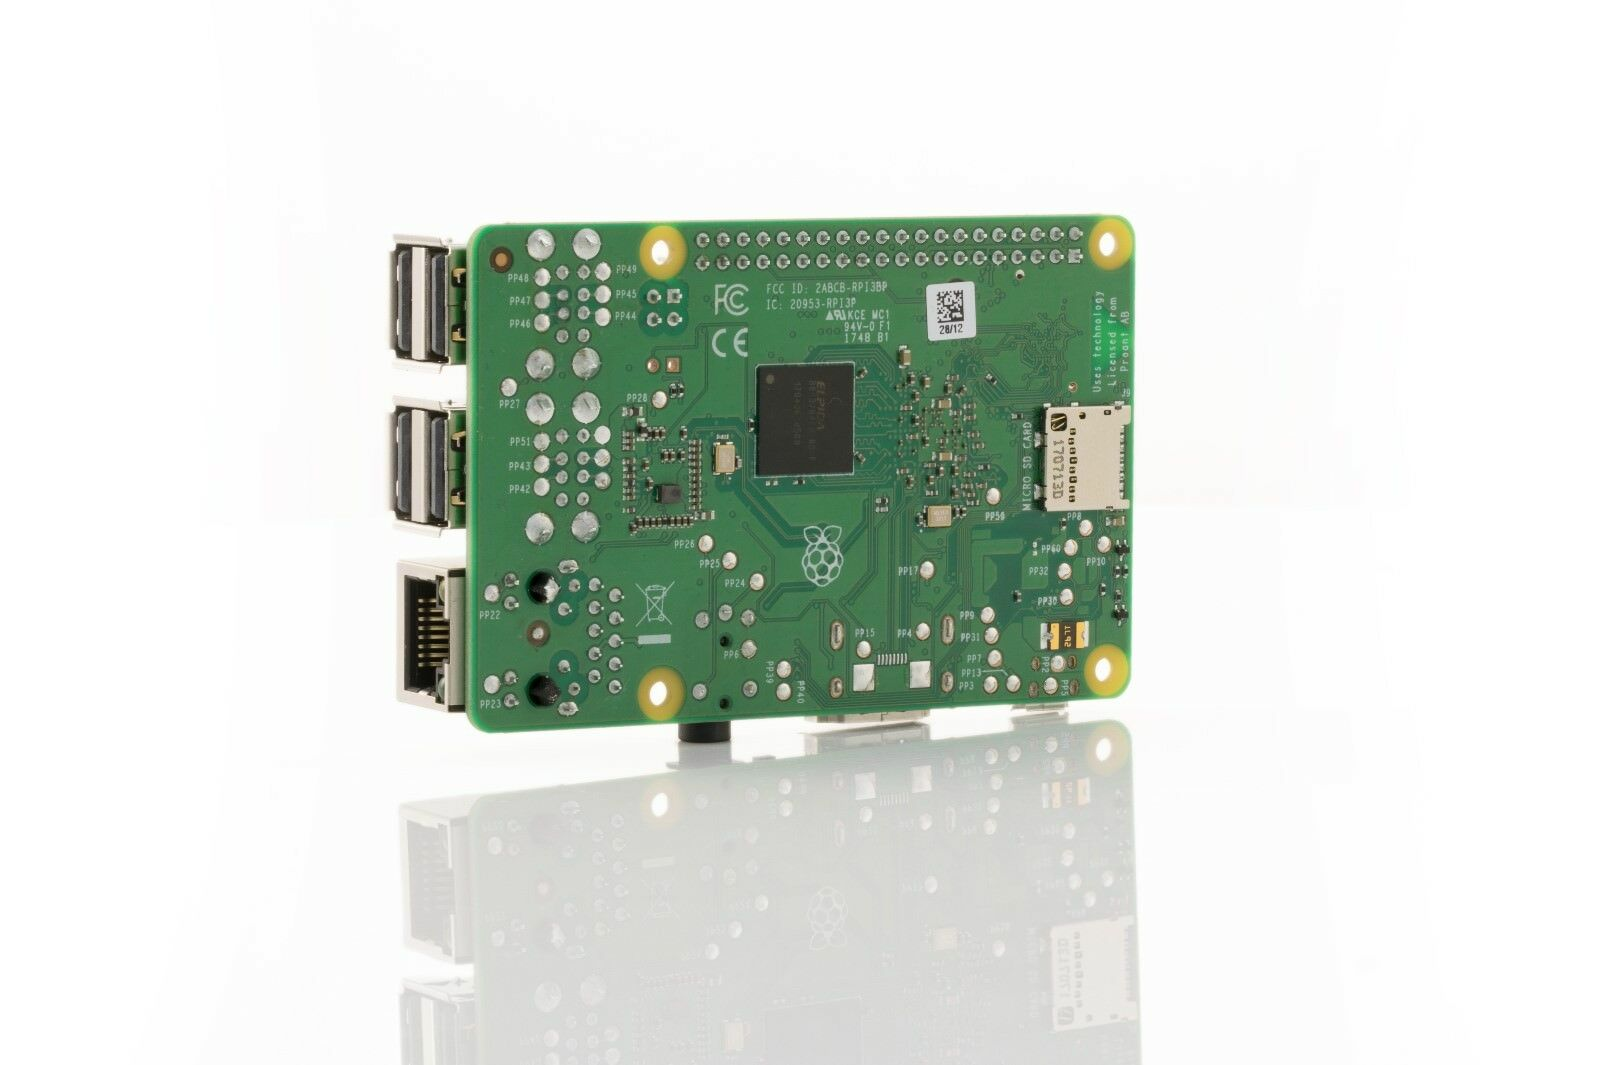 Raspberry PI 3 B+ B PLUS 64 Bit Quad Core 1GB WIFI Motherboard Computer NEW 2018